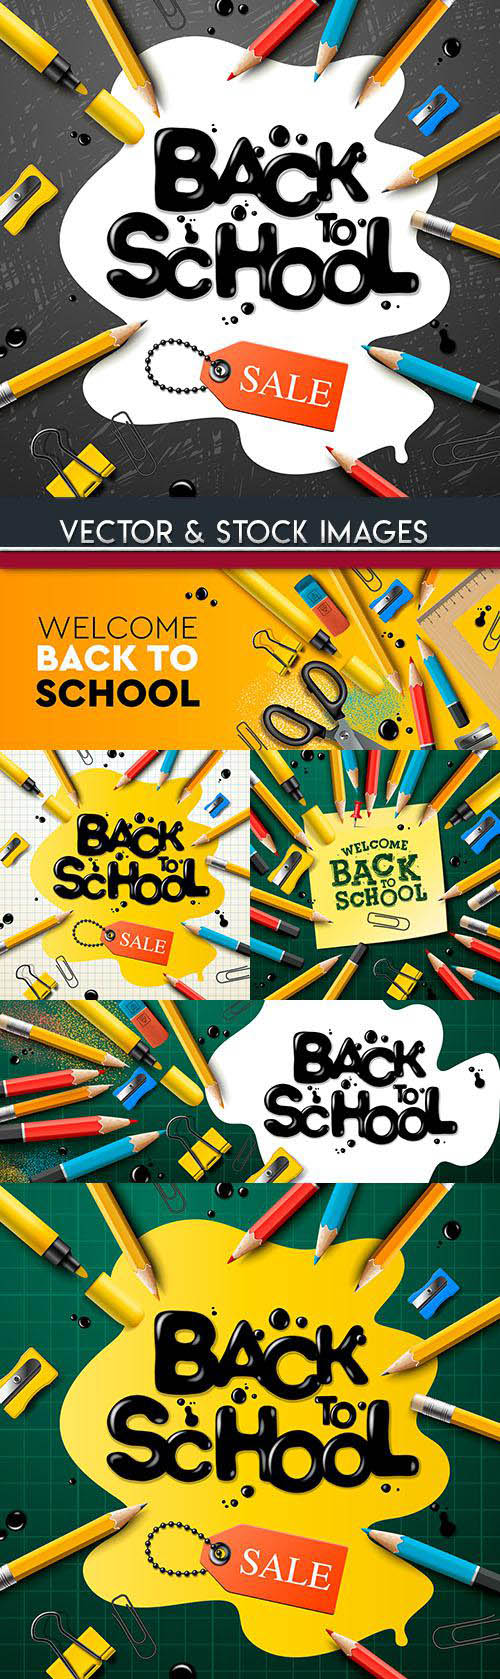 Back to school and accessories element illustration 23